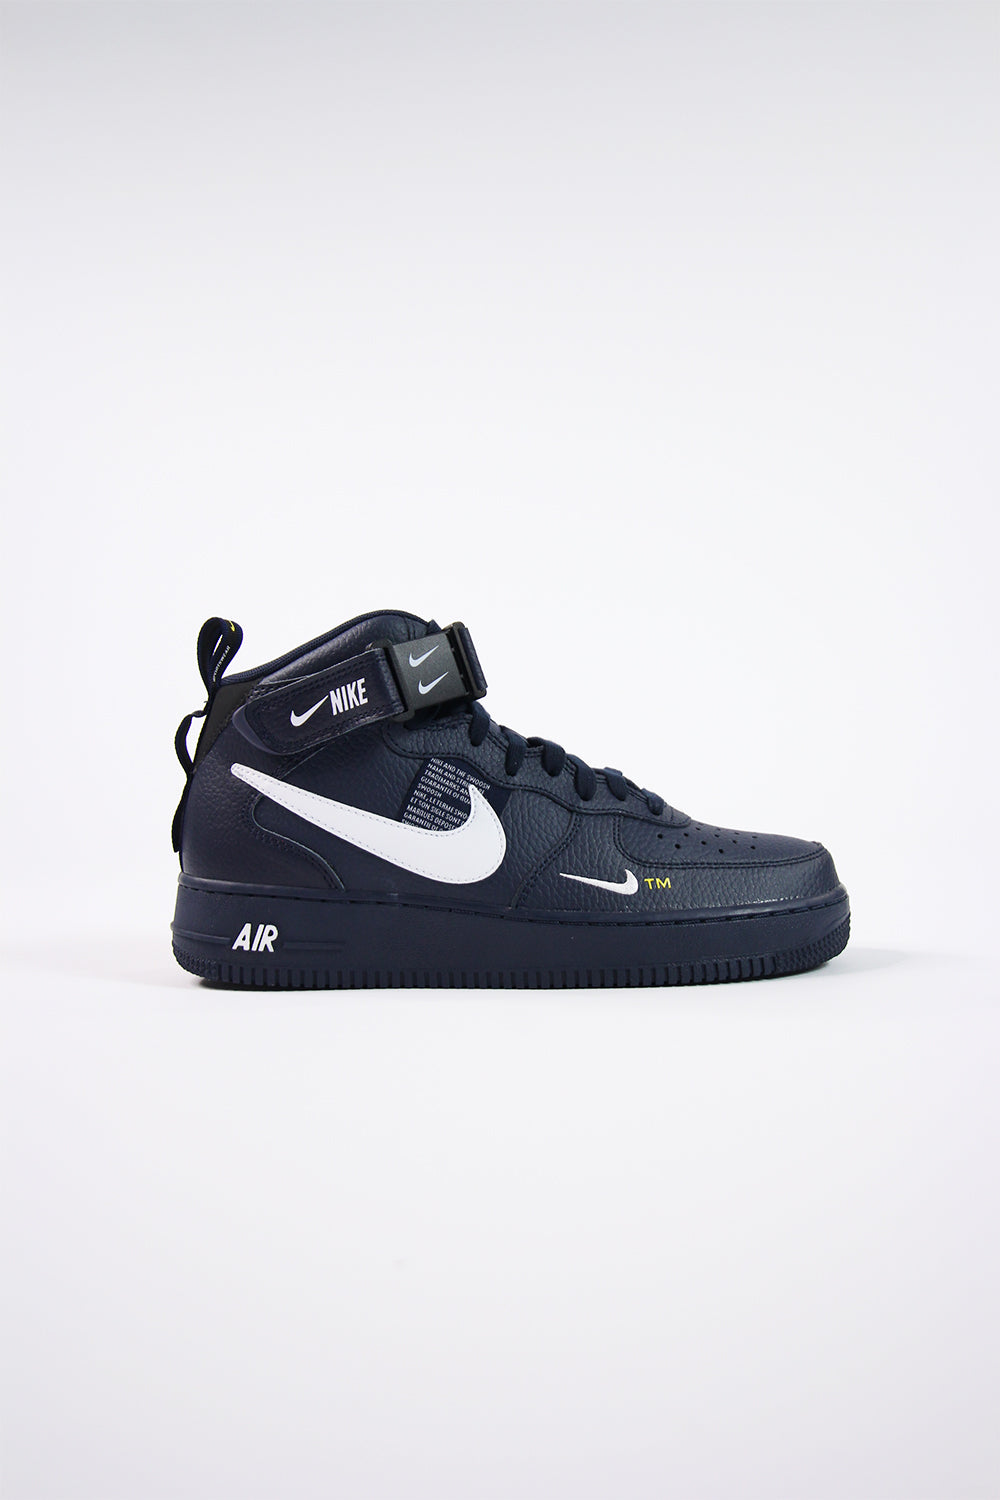 NIKE AIR FORCE 1 MID 07 LV8 Nike air force 1 mid LV8 WHITEBLACK TOUR YELLOW